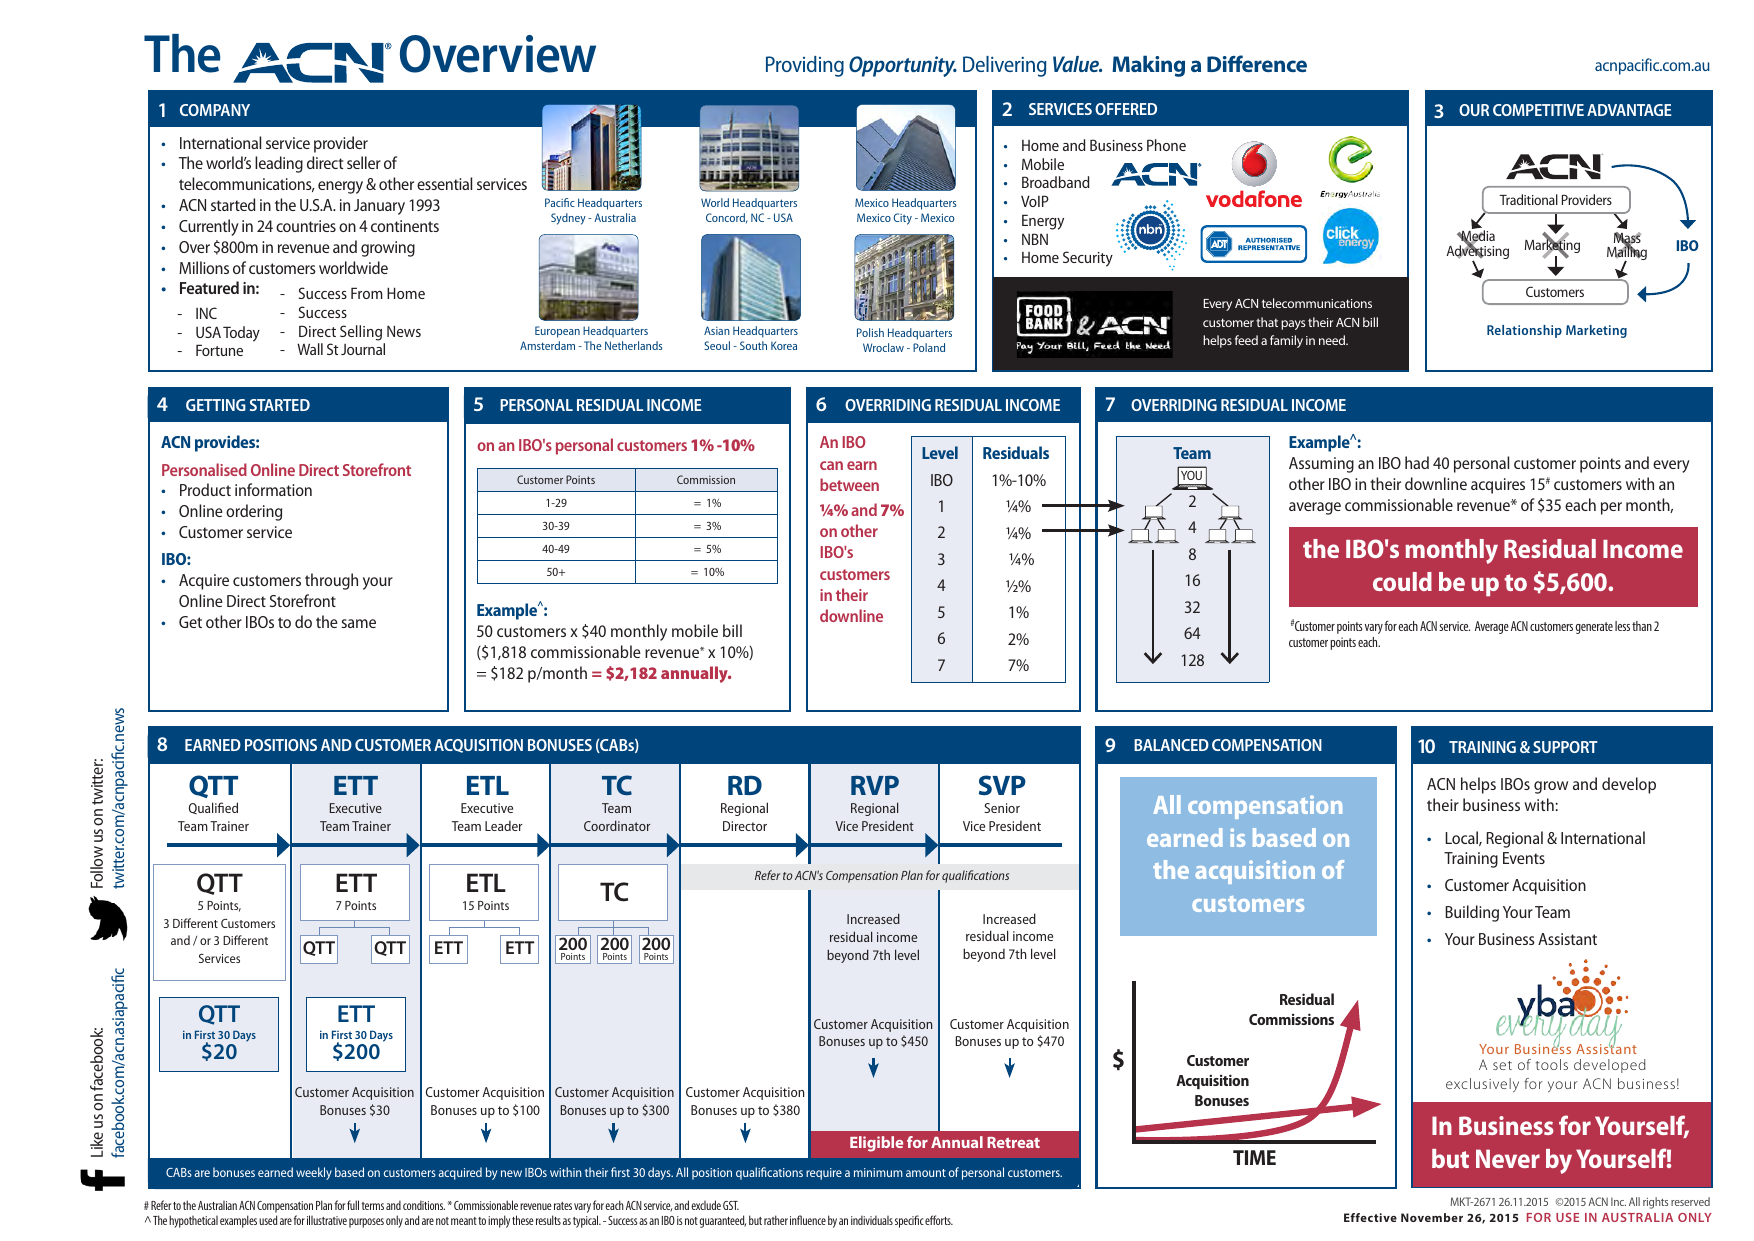 Acn Overview